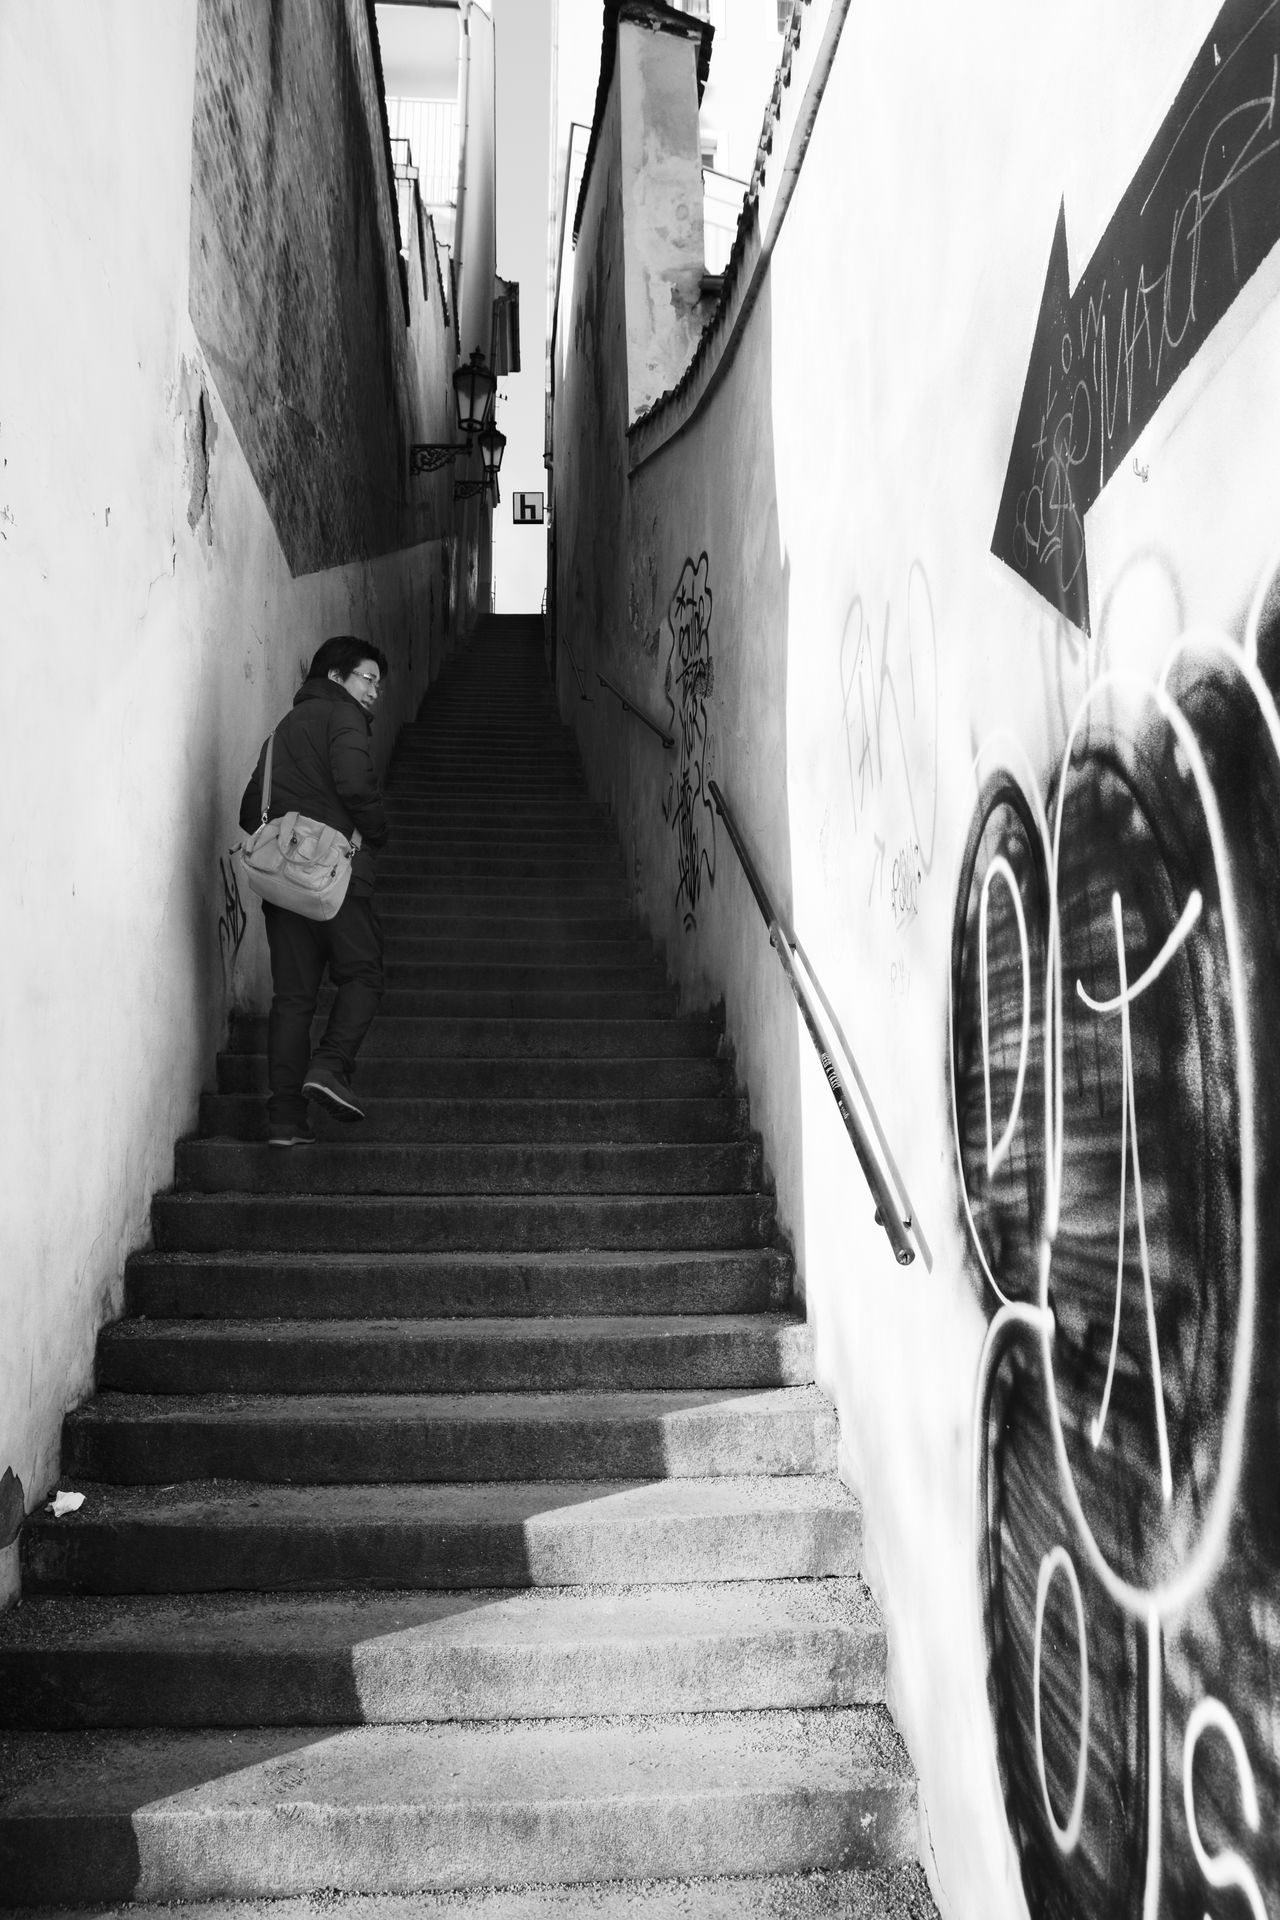 Follow the black arrow Adult Asian Man Black And White Blackandwhite Photography Bw City Life Go Up Light And Shadow Man Person Stair Stairway Street Street Photography Streetphotography Tour Tourism The City Light